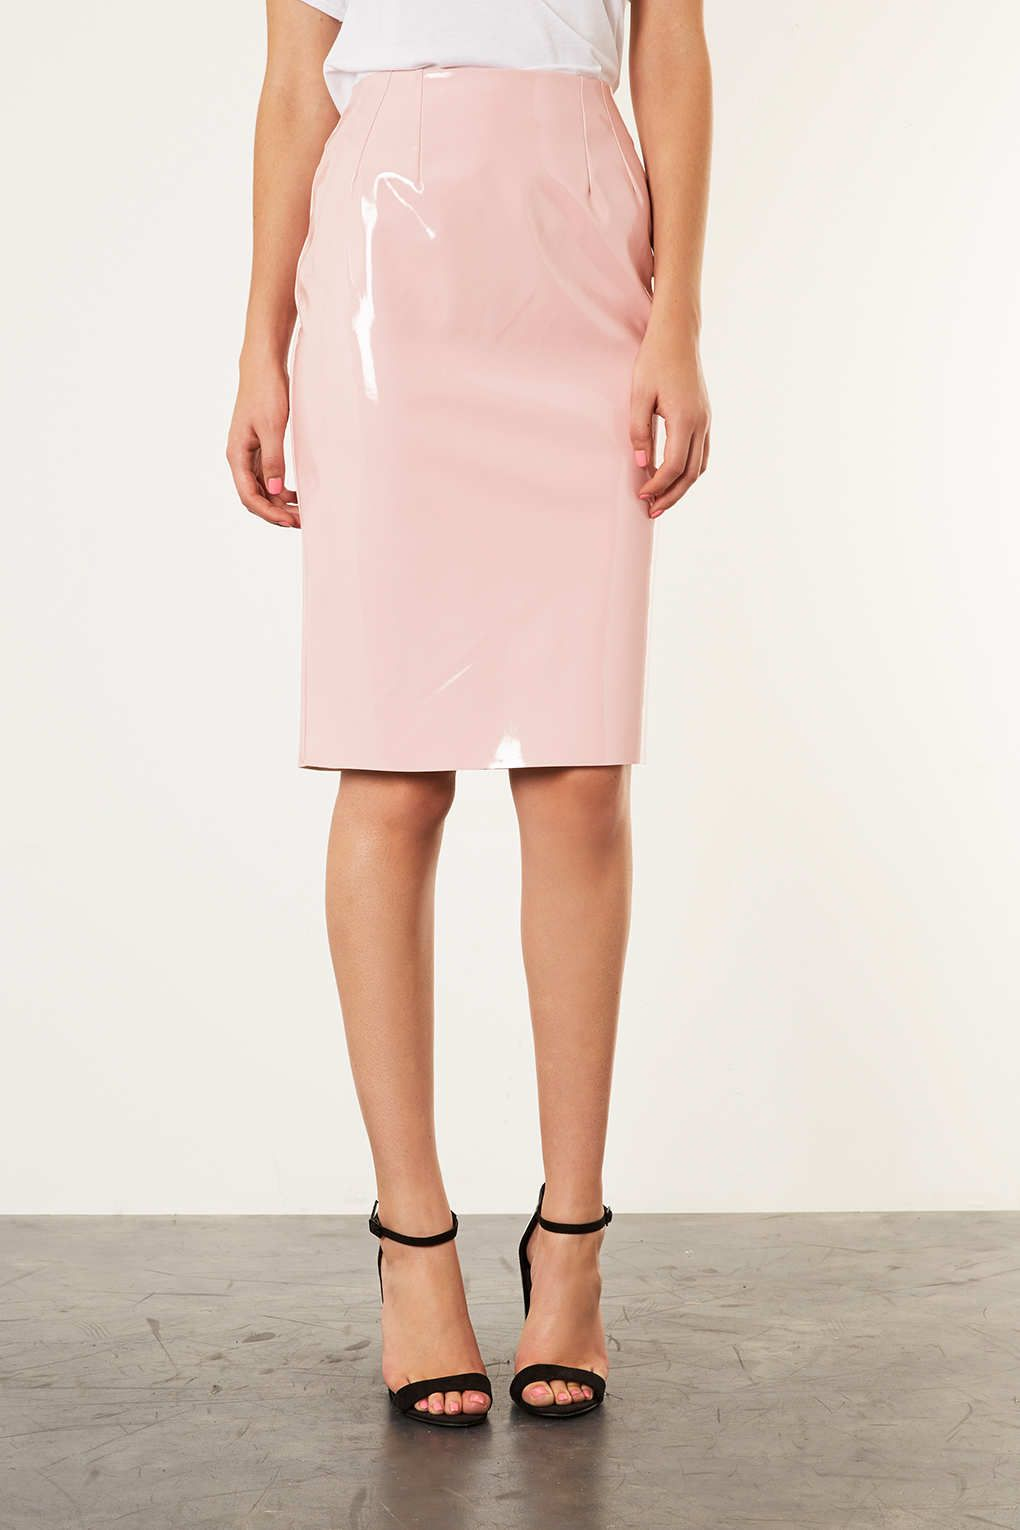 Pink PVC pencil skirt aka everything. | Pink | Pinterest | Vinyls ...